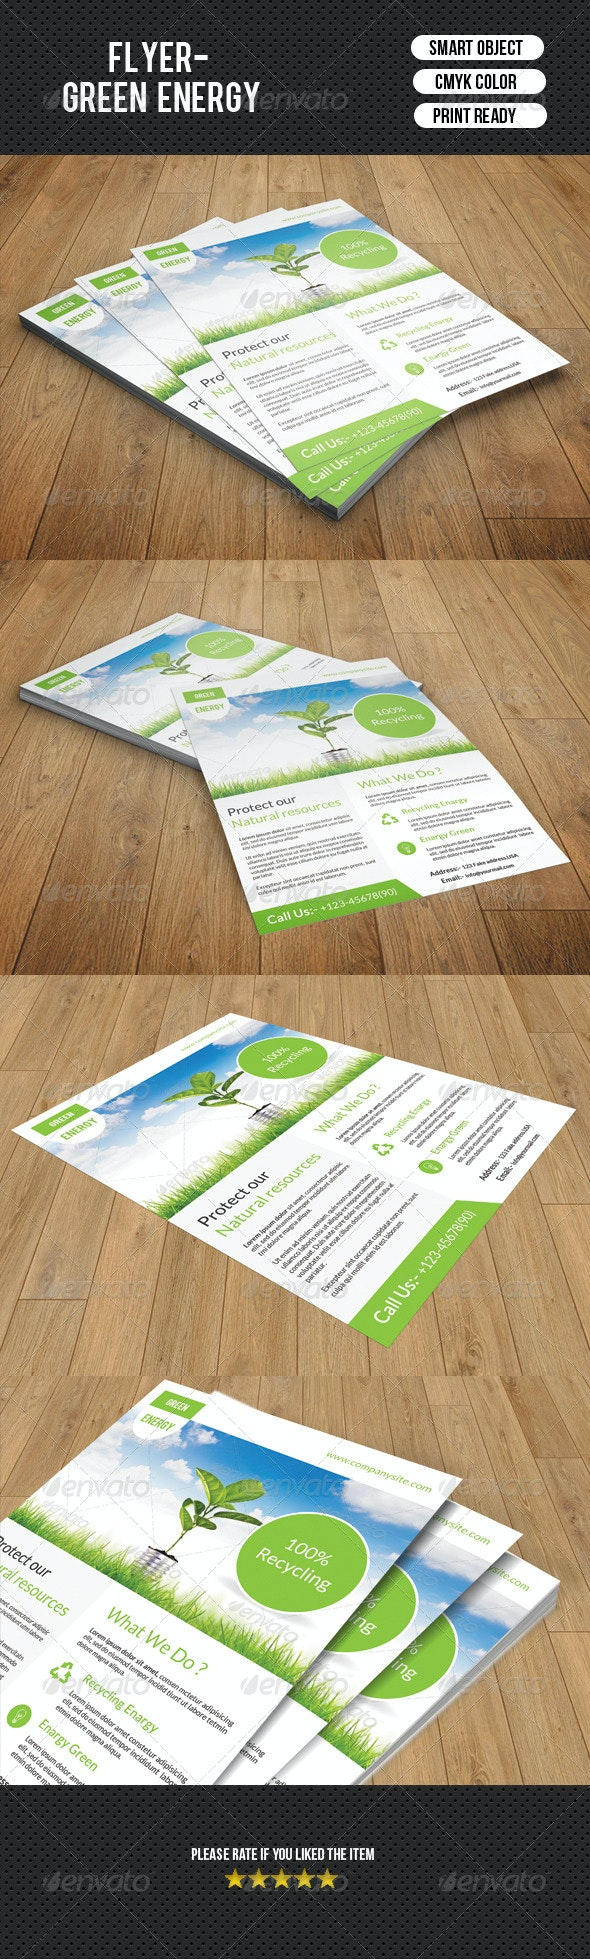 Green Energy Flyer-V94 - Corporate Flyers